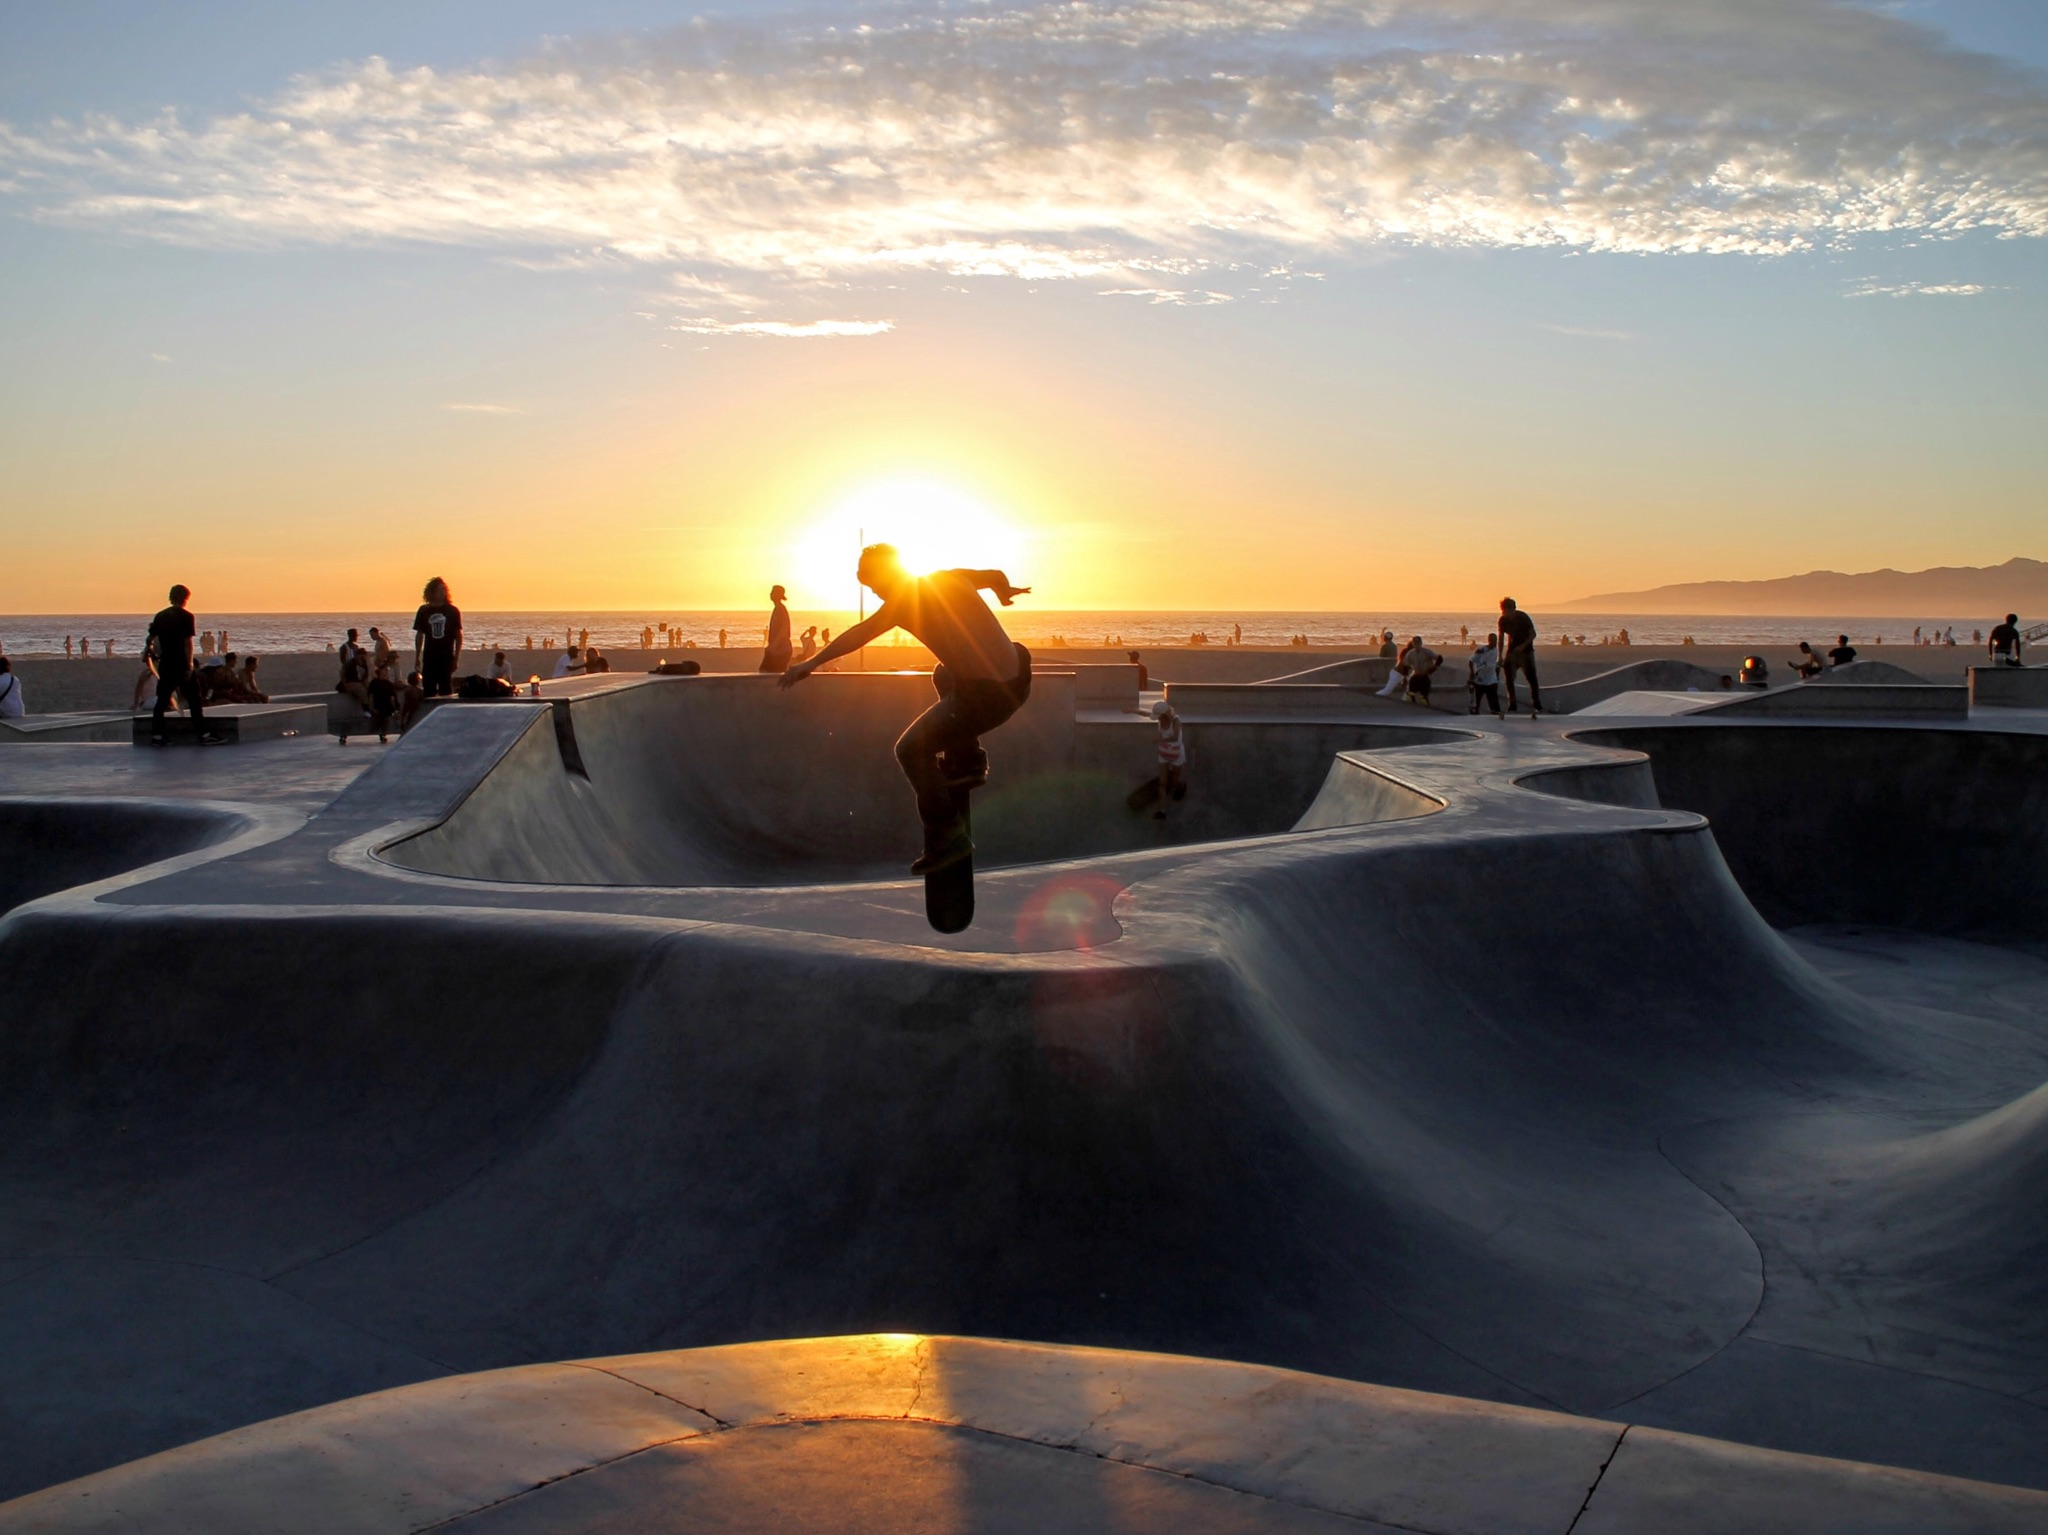 Skateboarding at dusk. Learn about Scrum in 10 minutes then get our and have fun.